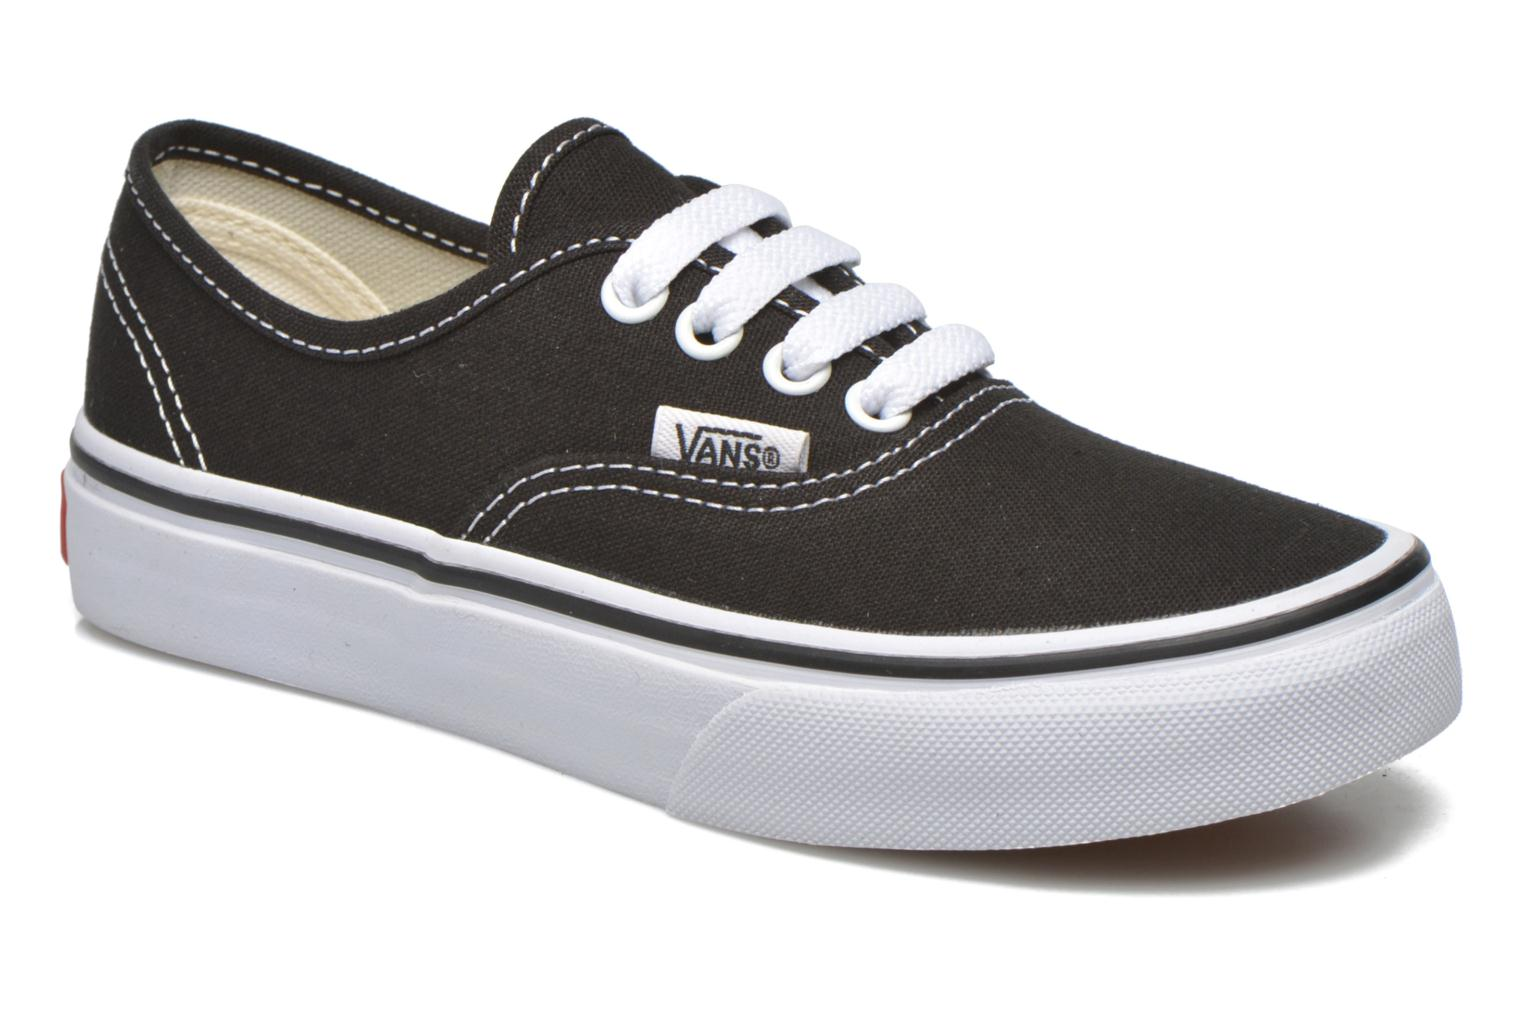 Authentic E Black/true white